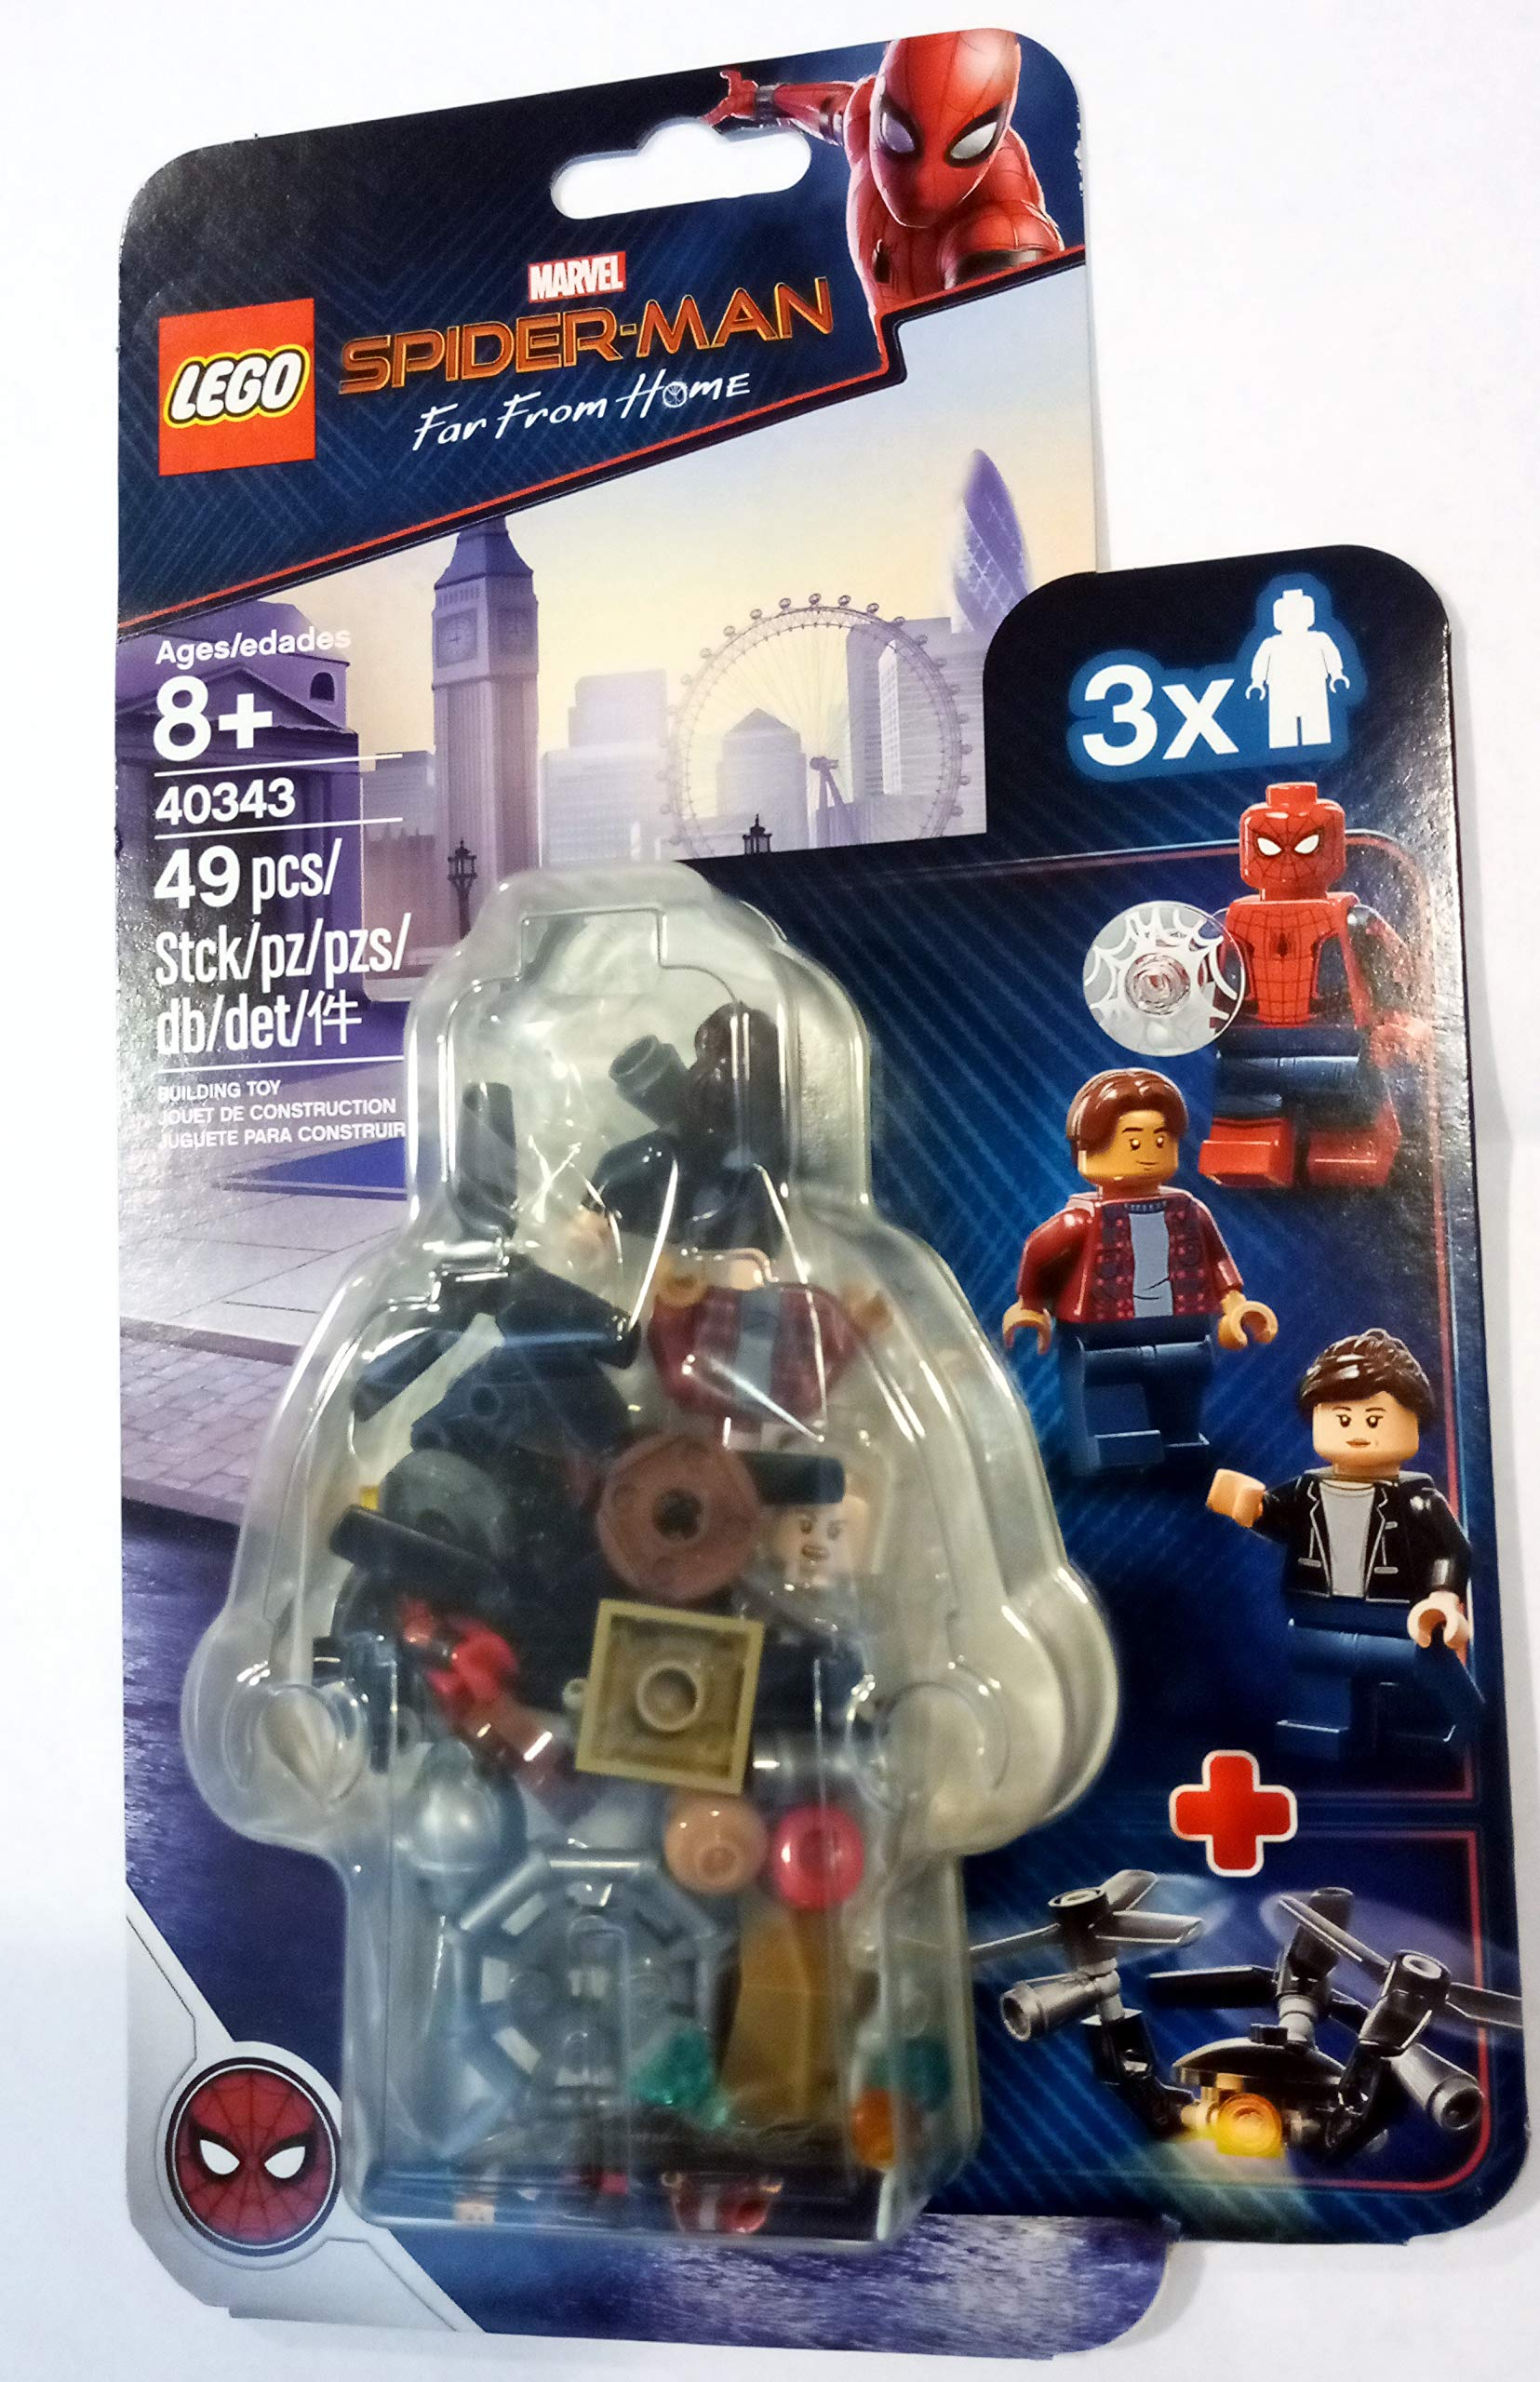 LEGO Marvel Spider-Man Far From Home Spider-Man and the Museum Break-In Set #40343